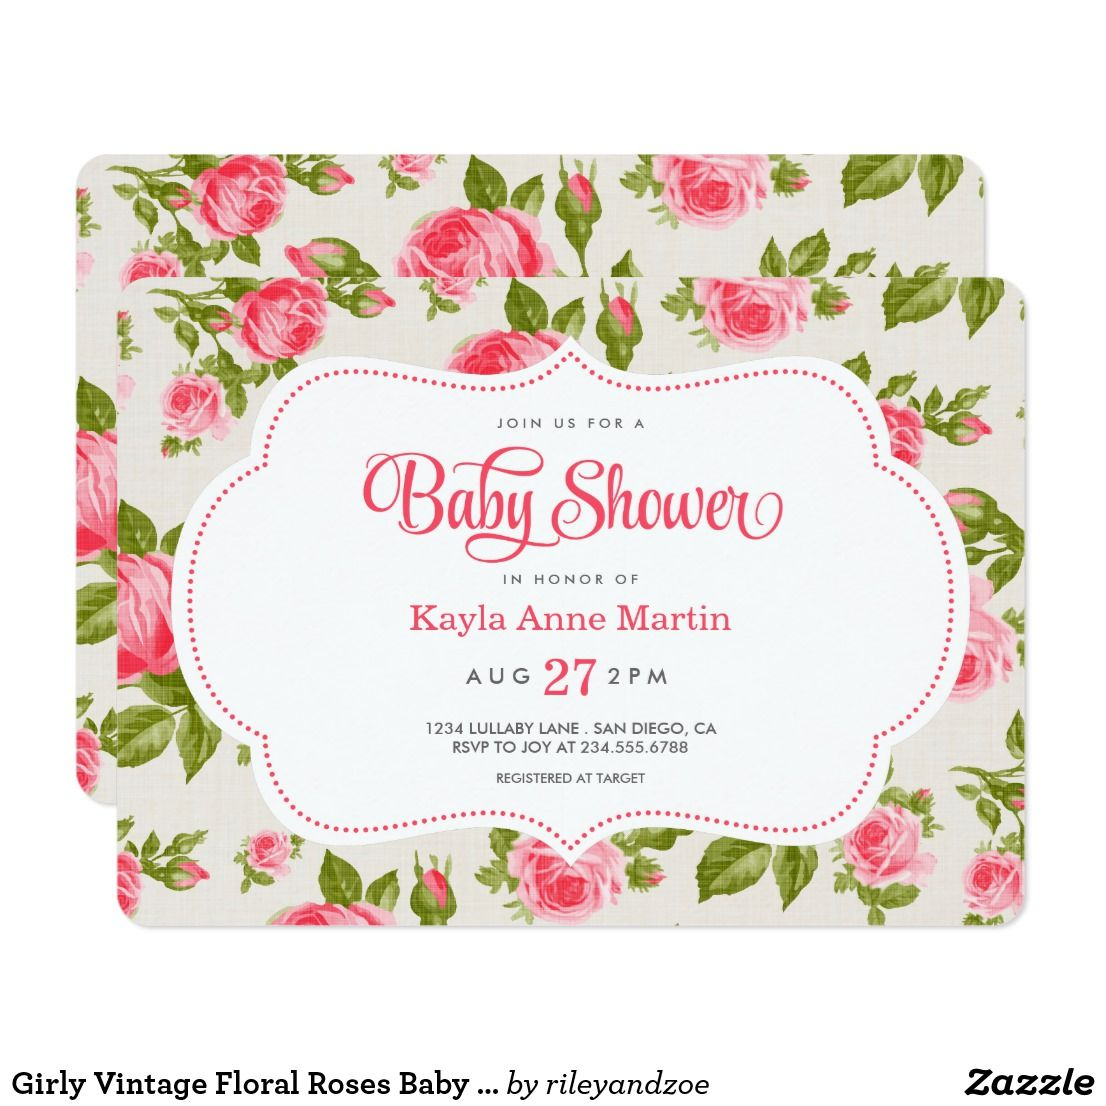 Girly Vintage Floral Roses Baby Shower Invitation | Shower invitations